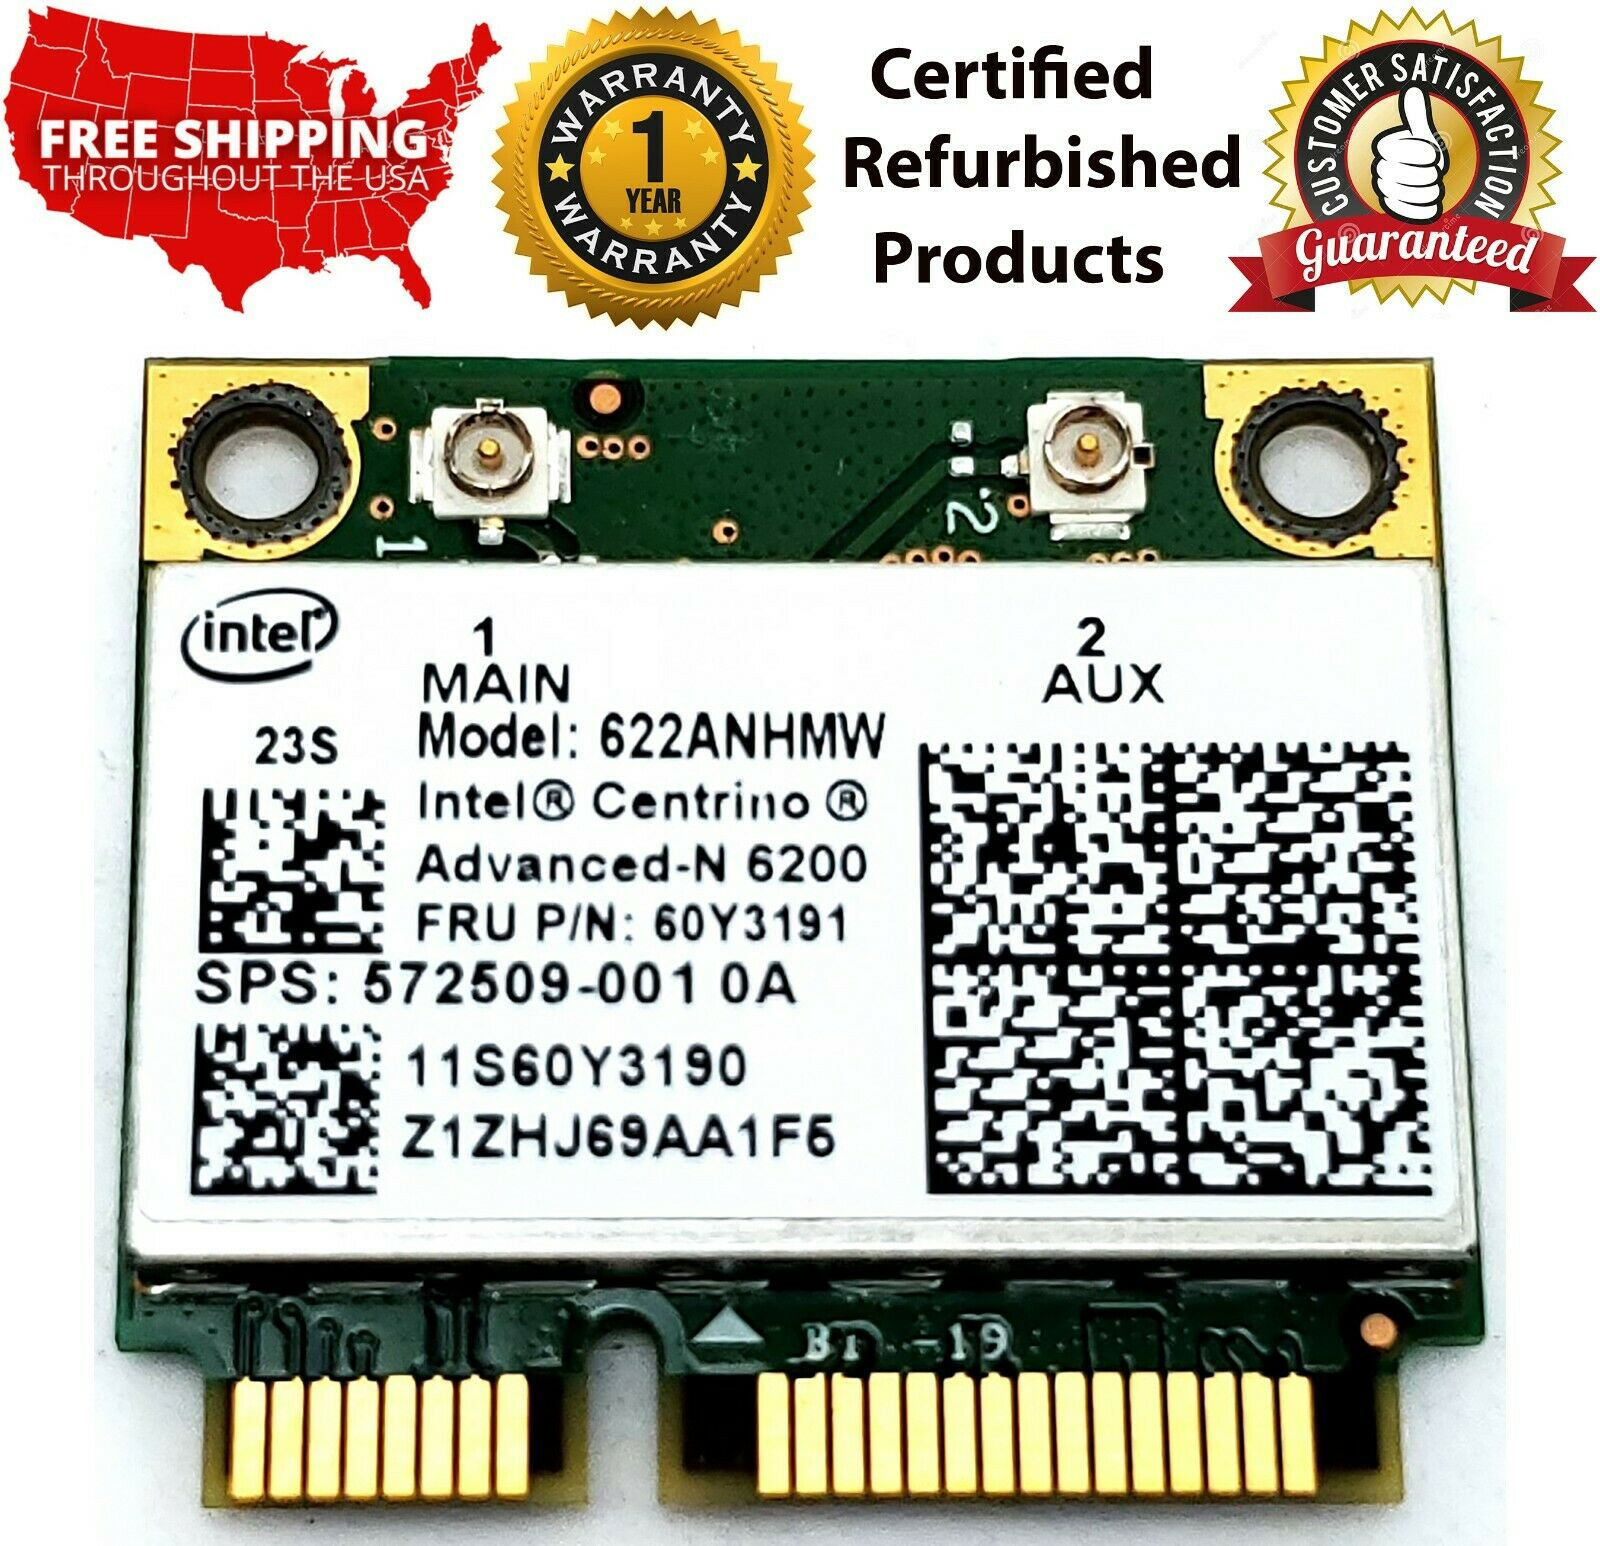 USB 2.0 Wireless WiFi Lan Card for Dell Dimension 2300 Series